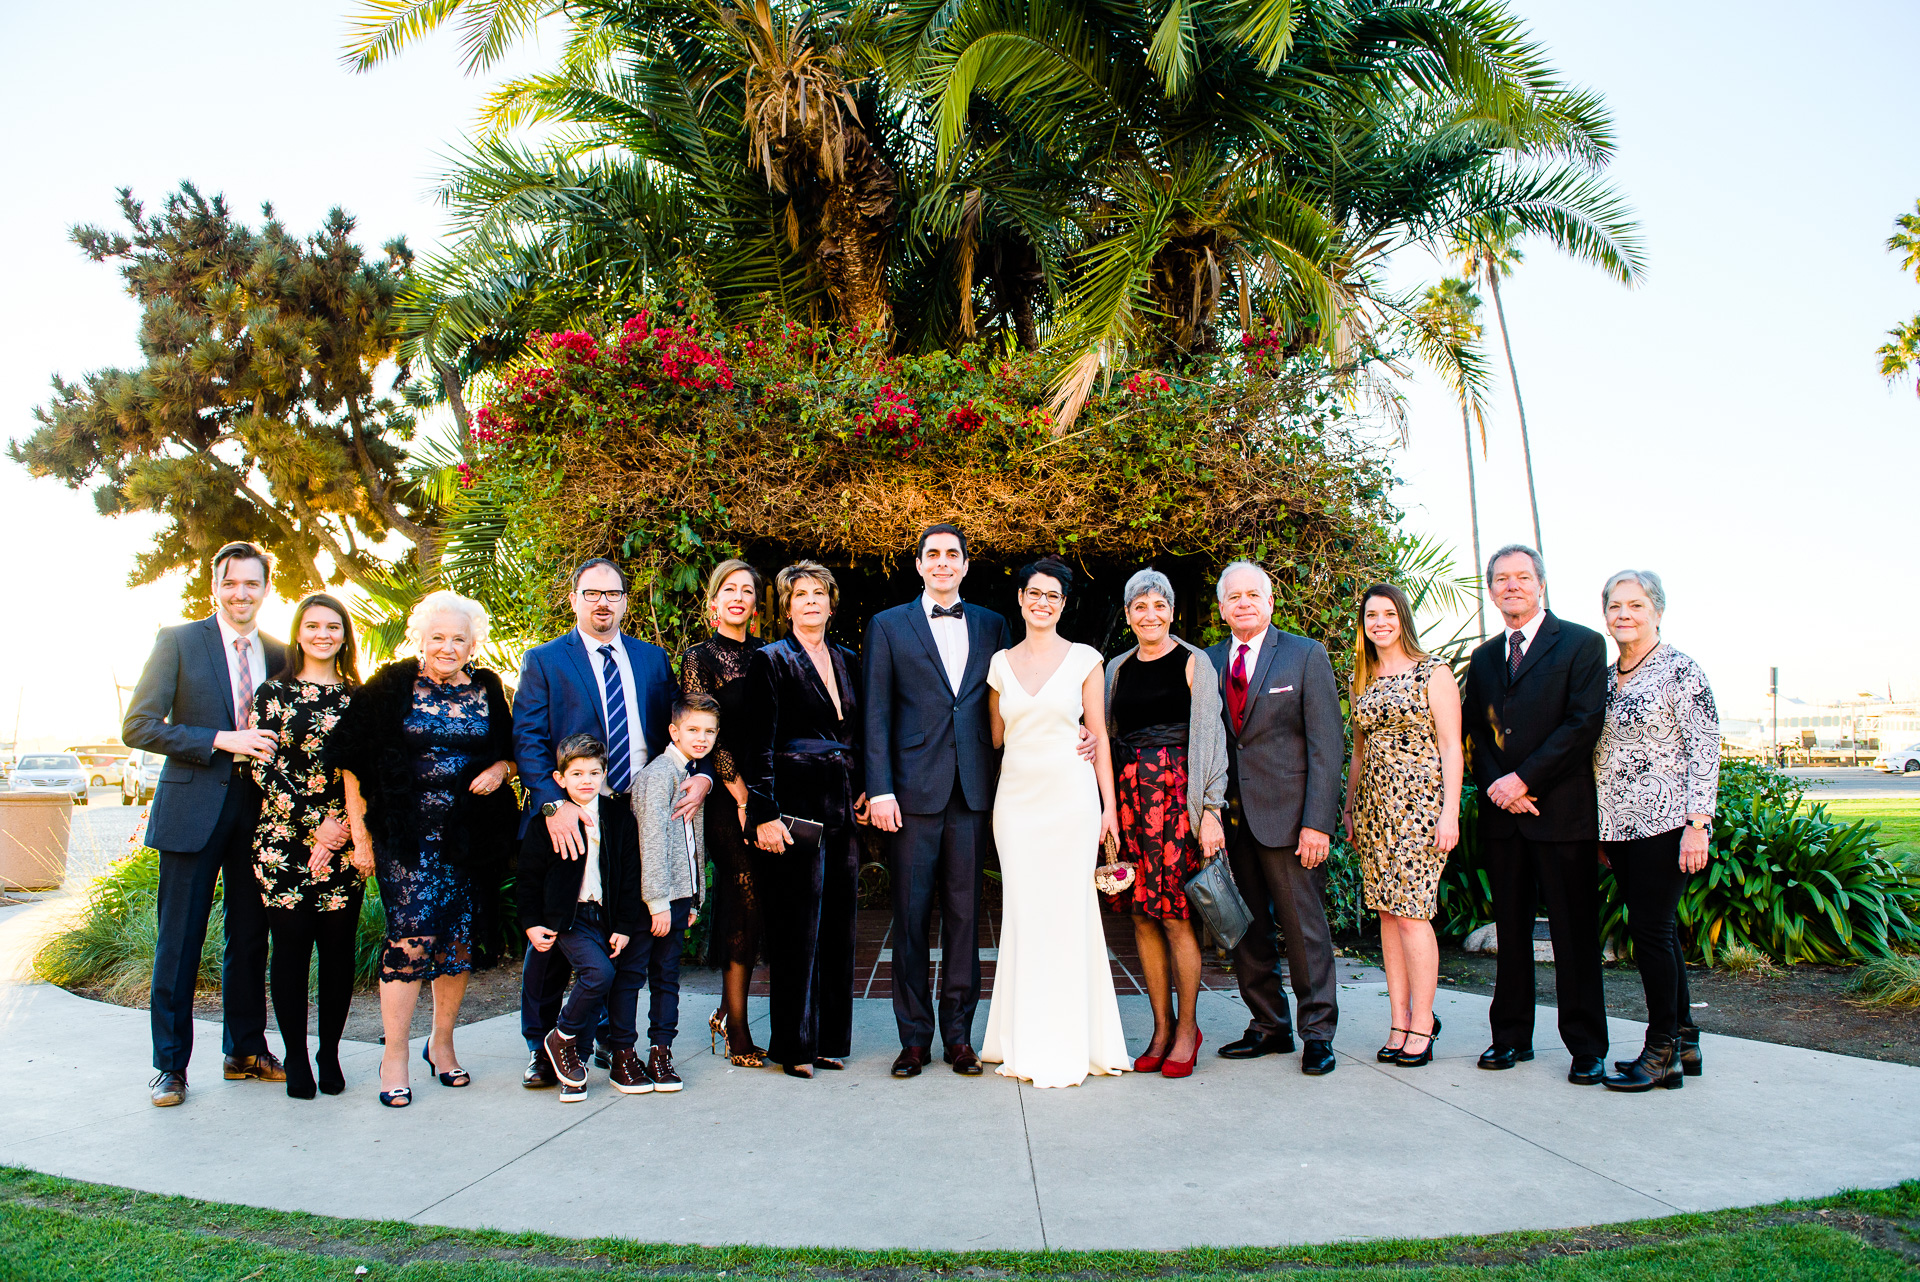 12.29.17 - Michelle and Tommaso Wedding - San Diego Courthouse -  Paul Douda Photography - 174.jpg